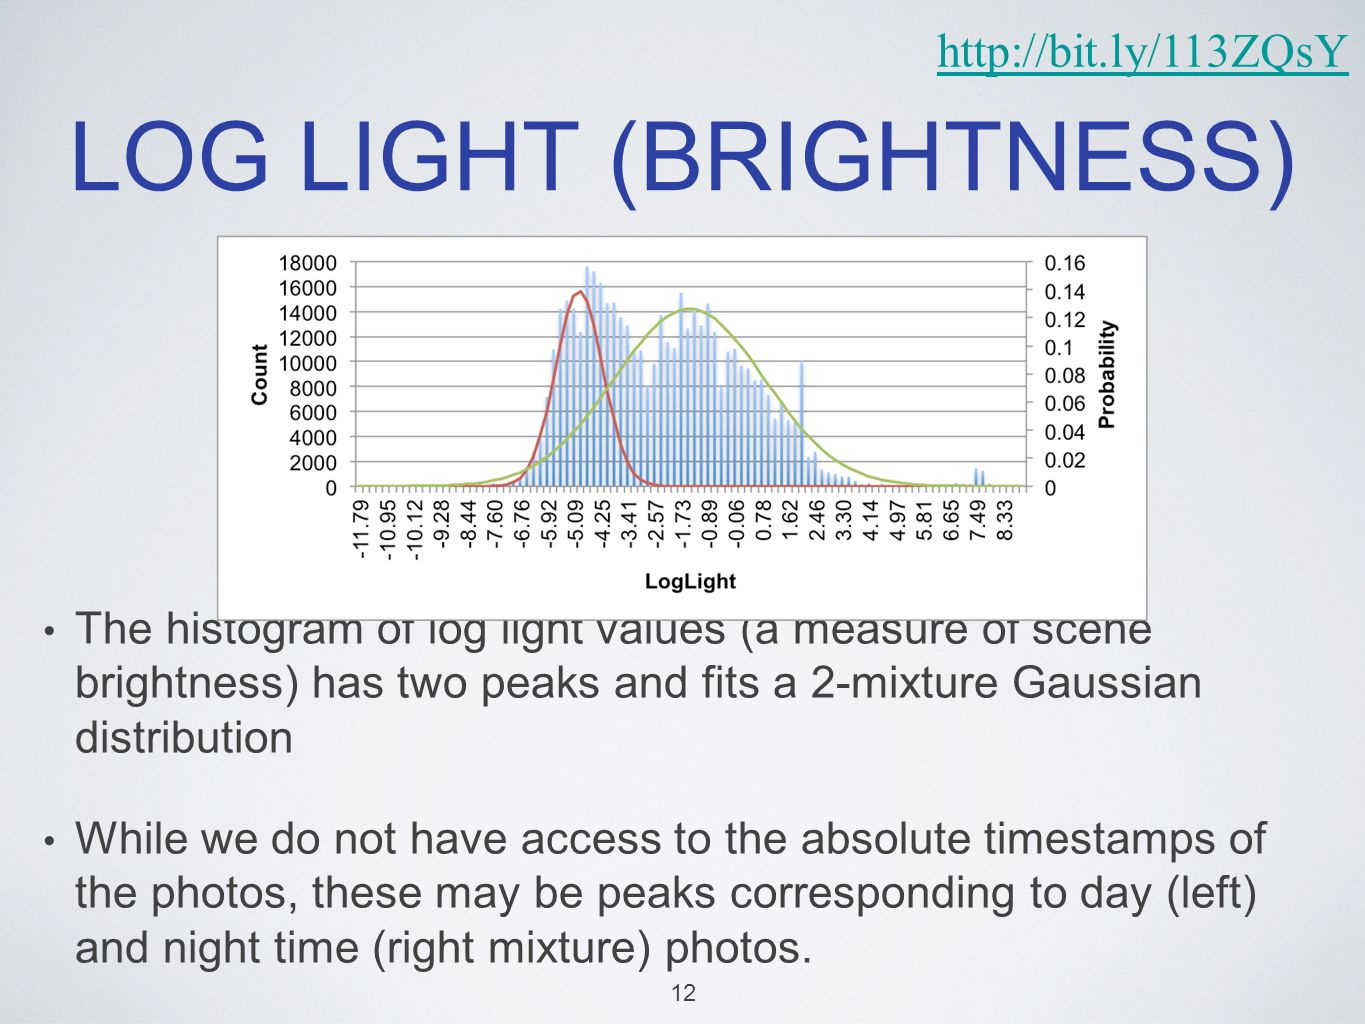 LOG LIGHT (BRIGHTNESS) The histogram of log light values (a measure of scene brightness) has two peaks and fits a 2-mixture Gaussian distribution While we do not have access to the absolute timestamps of the photos, these may be peaks corresponding to day (left) and night time (right mixture) photos.